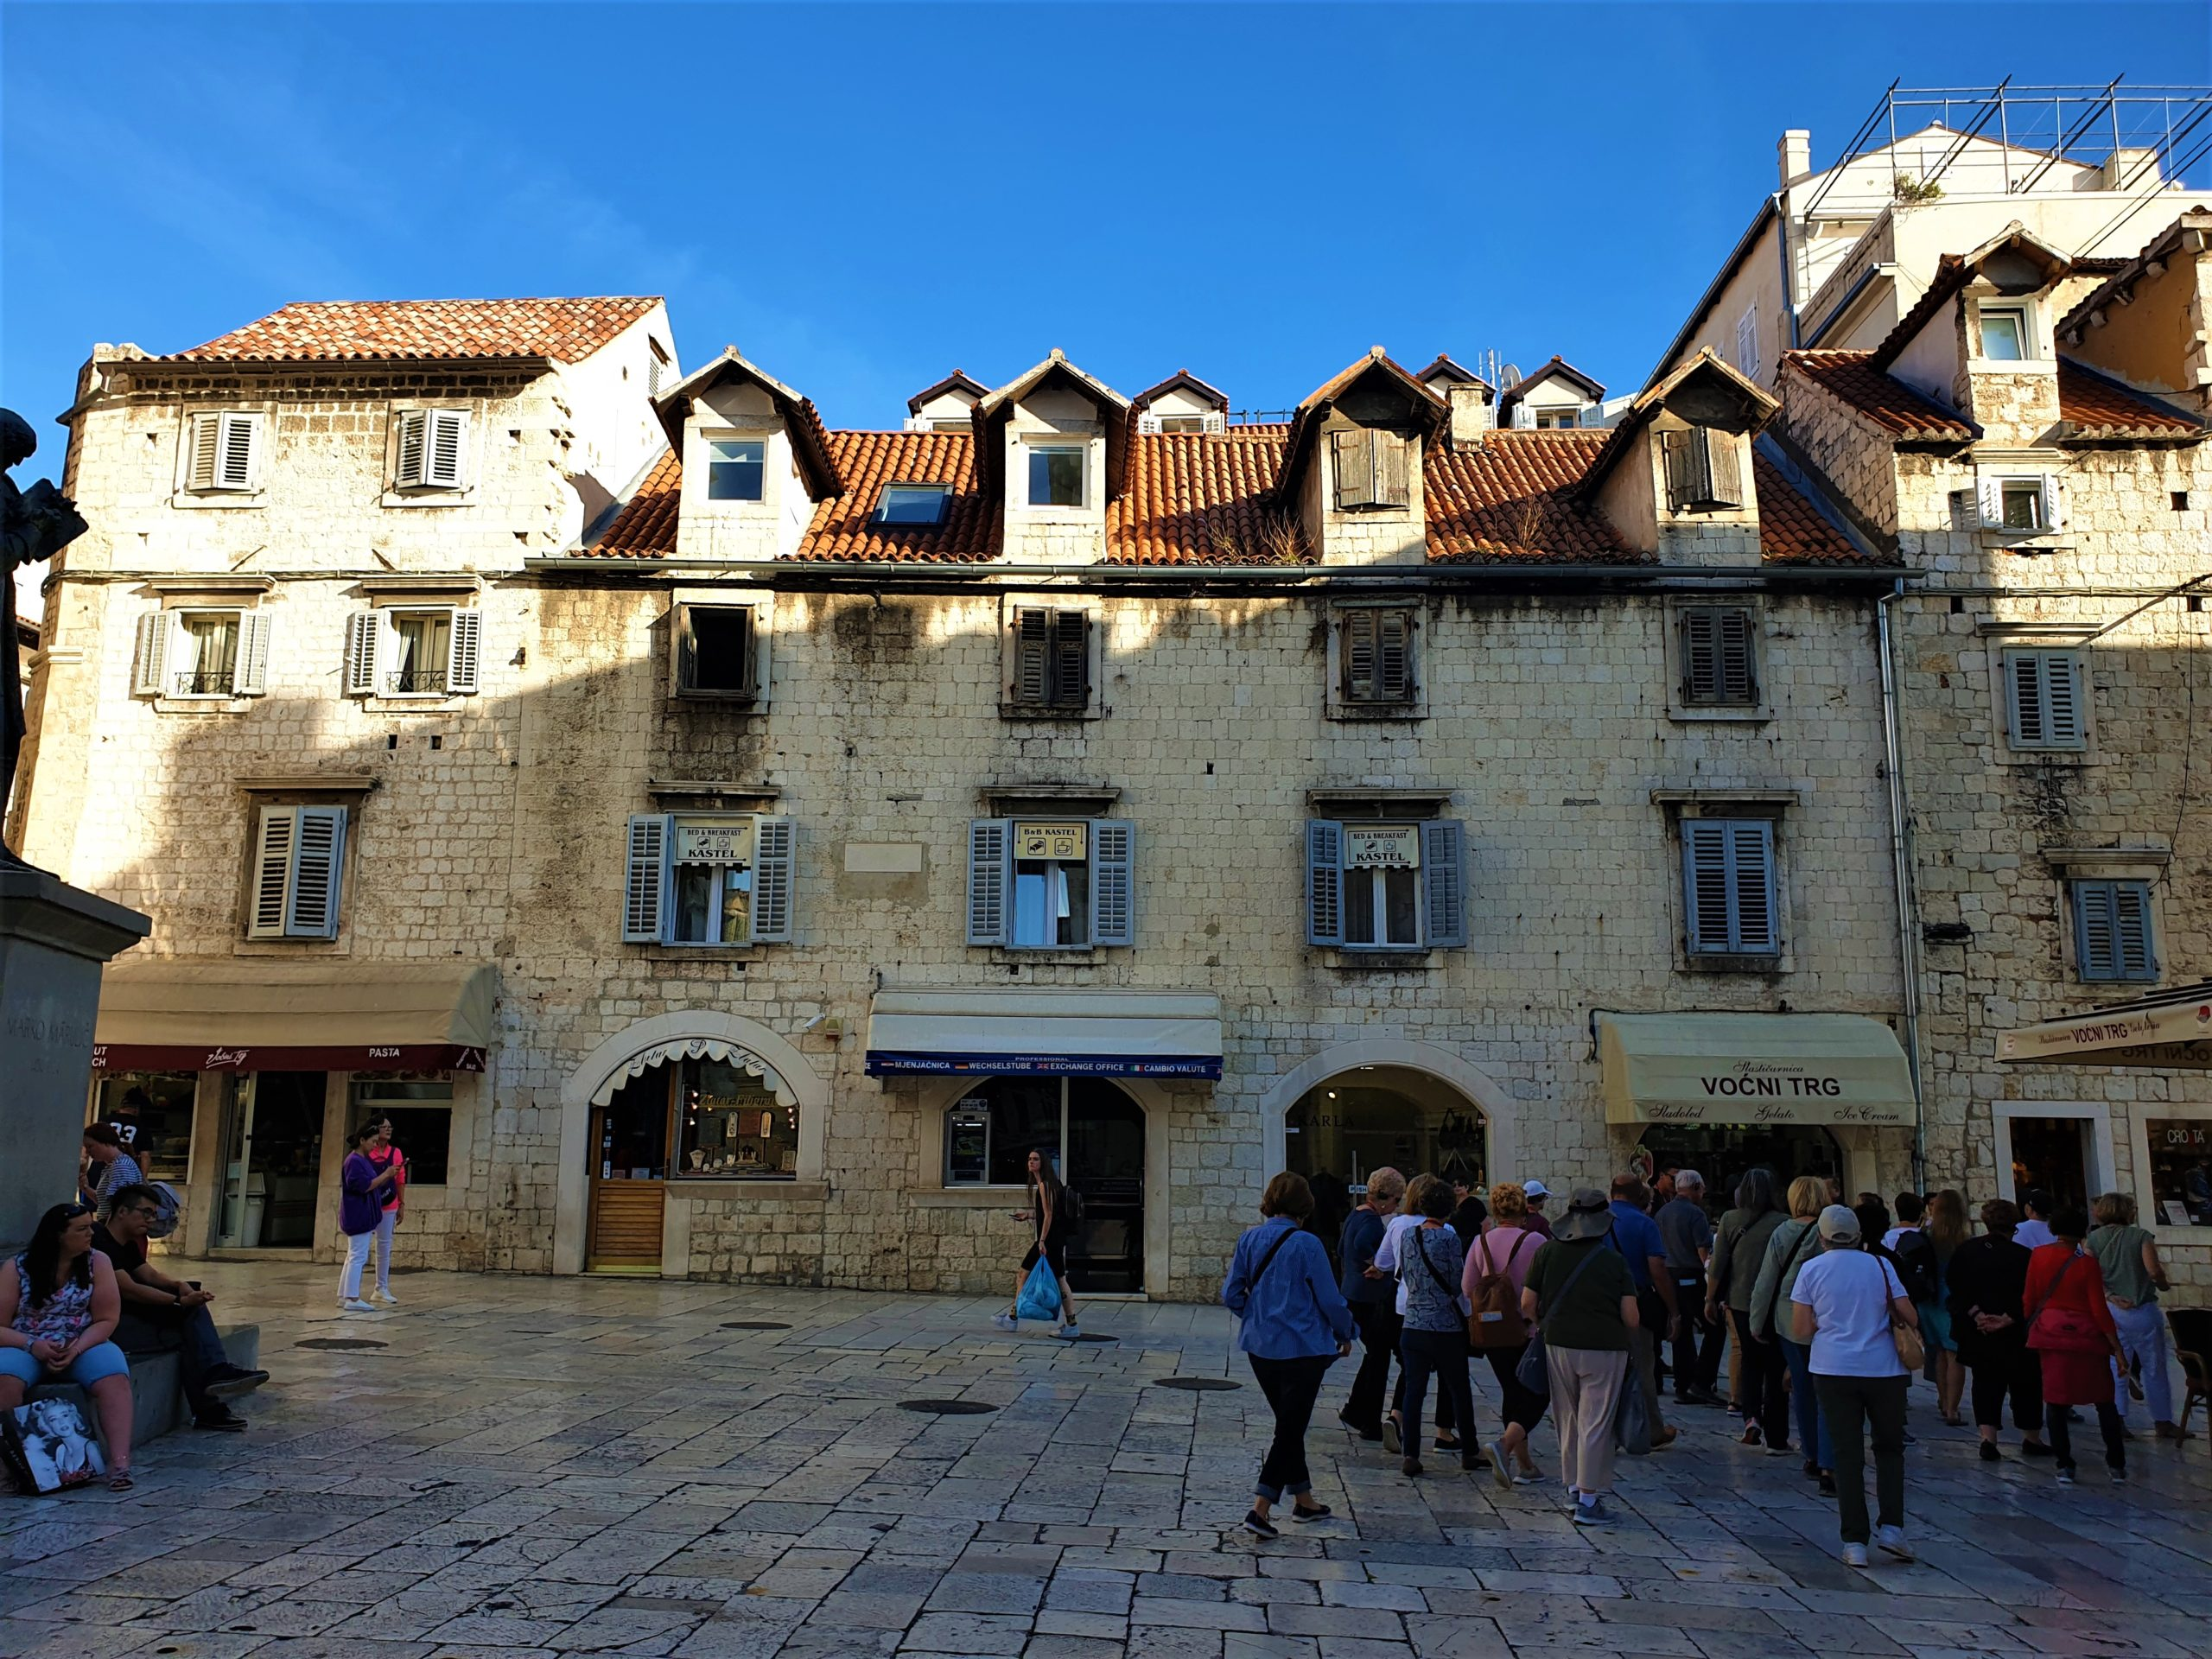 Streets of Old Town, Split